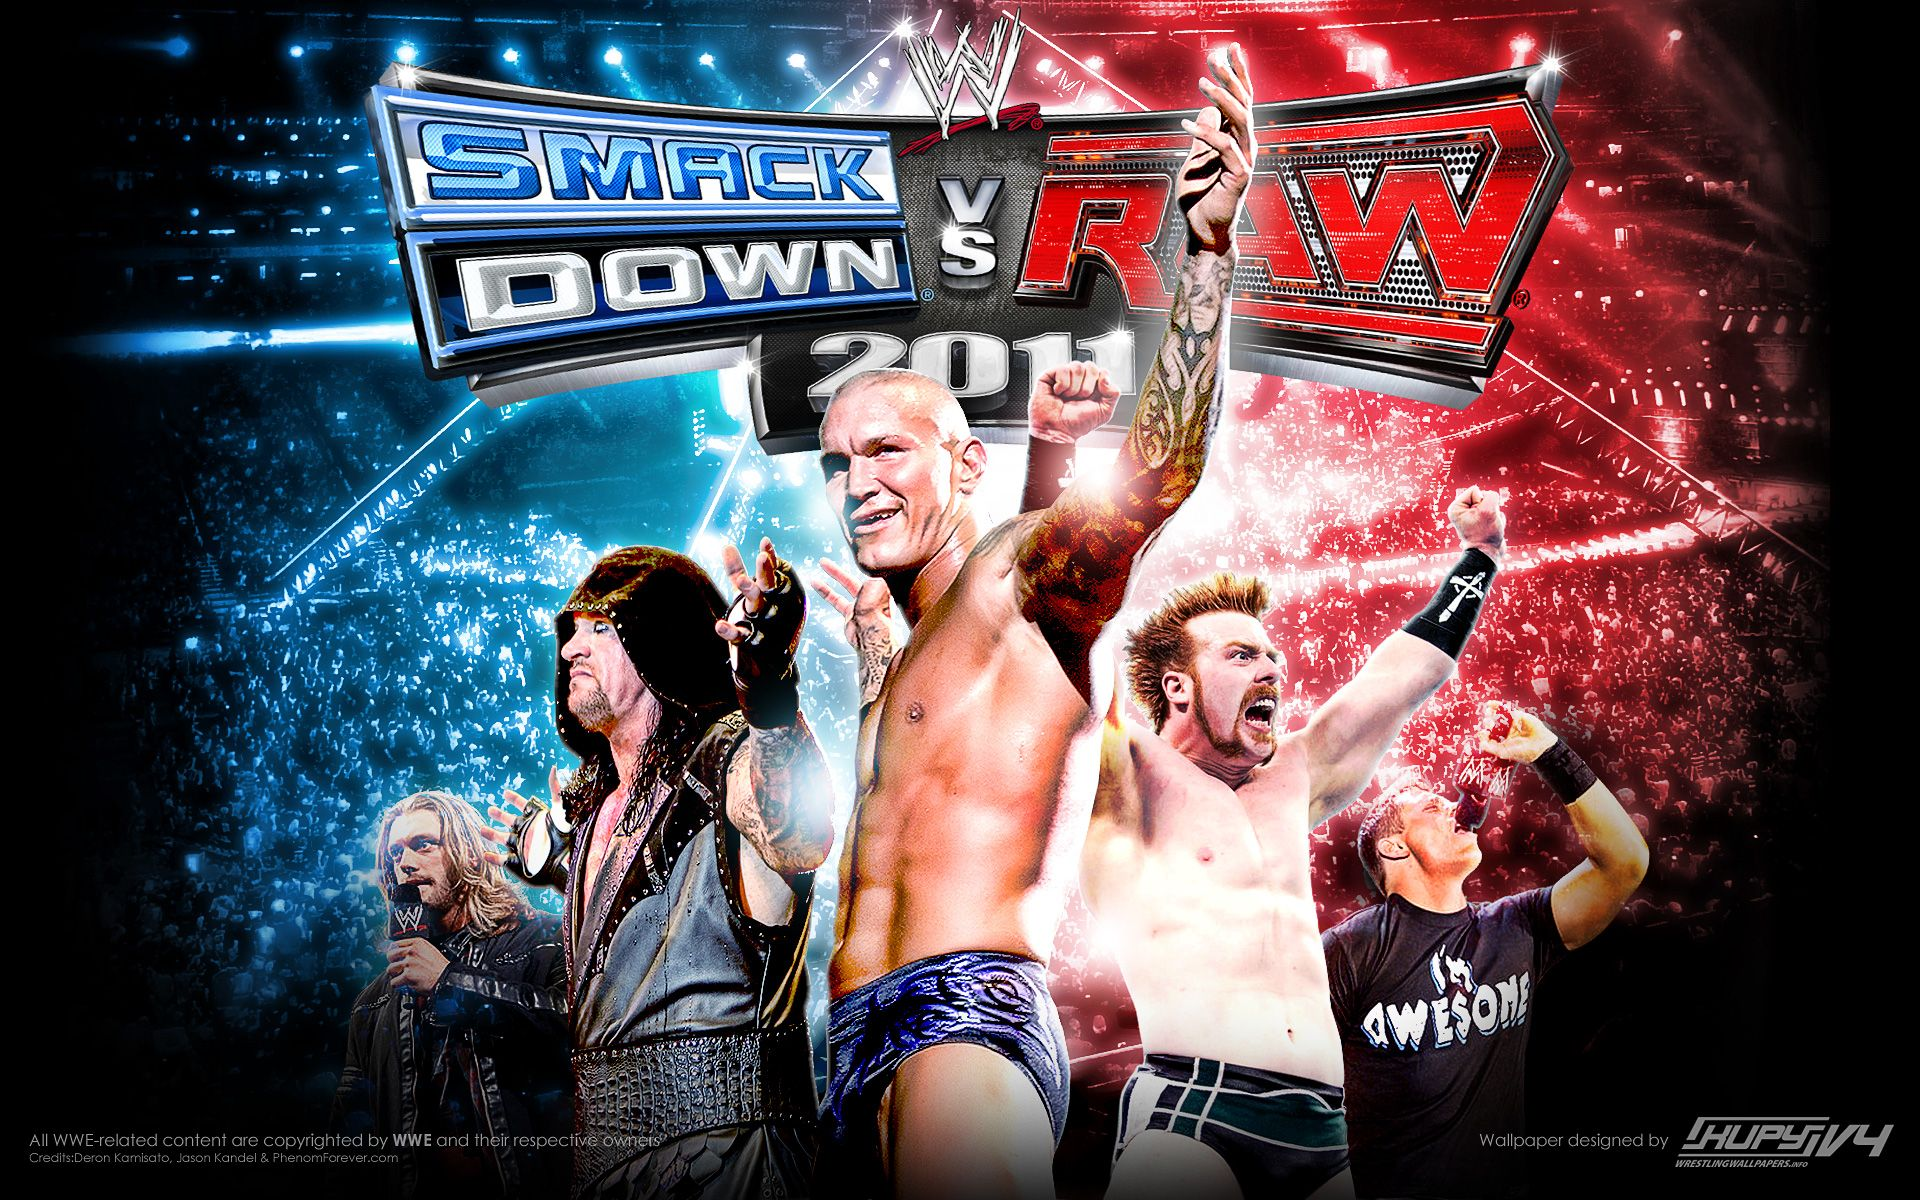 Wwe smackdown vs raw 2011 is a professional wrestling video game developed by yuke s and published by thq for the playstation portable psp ppsspp